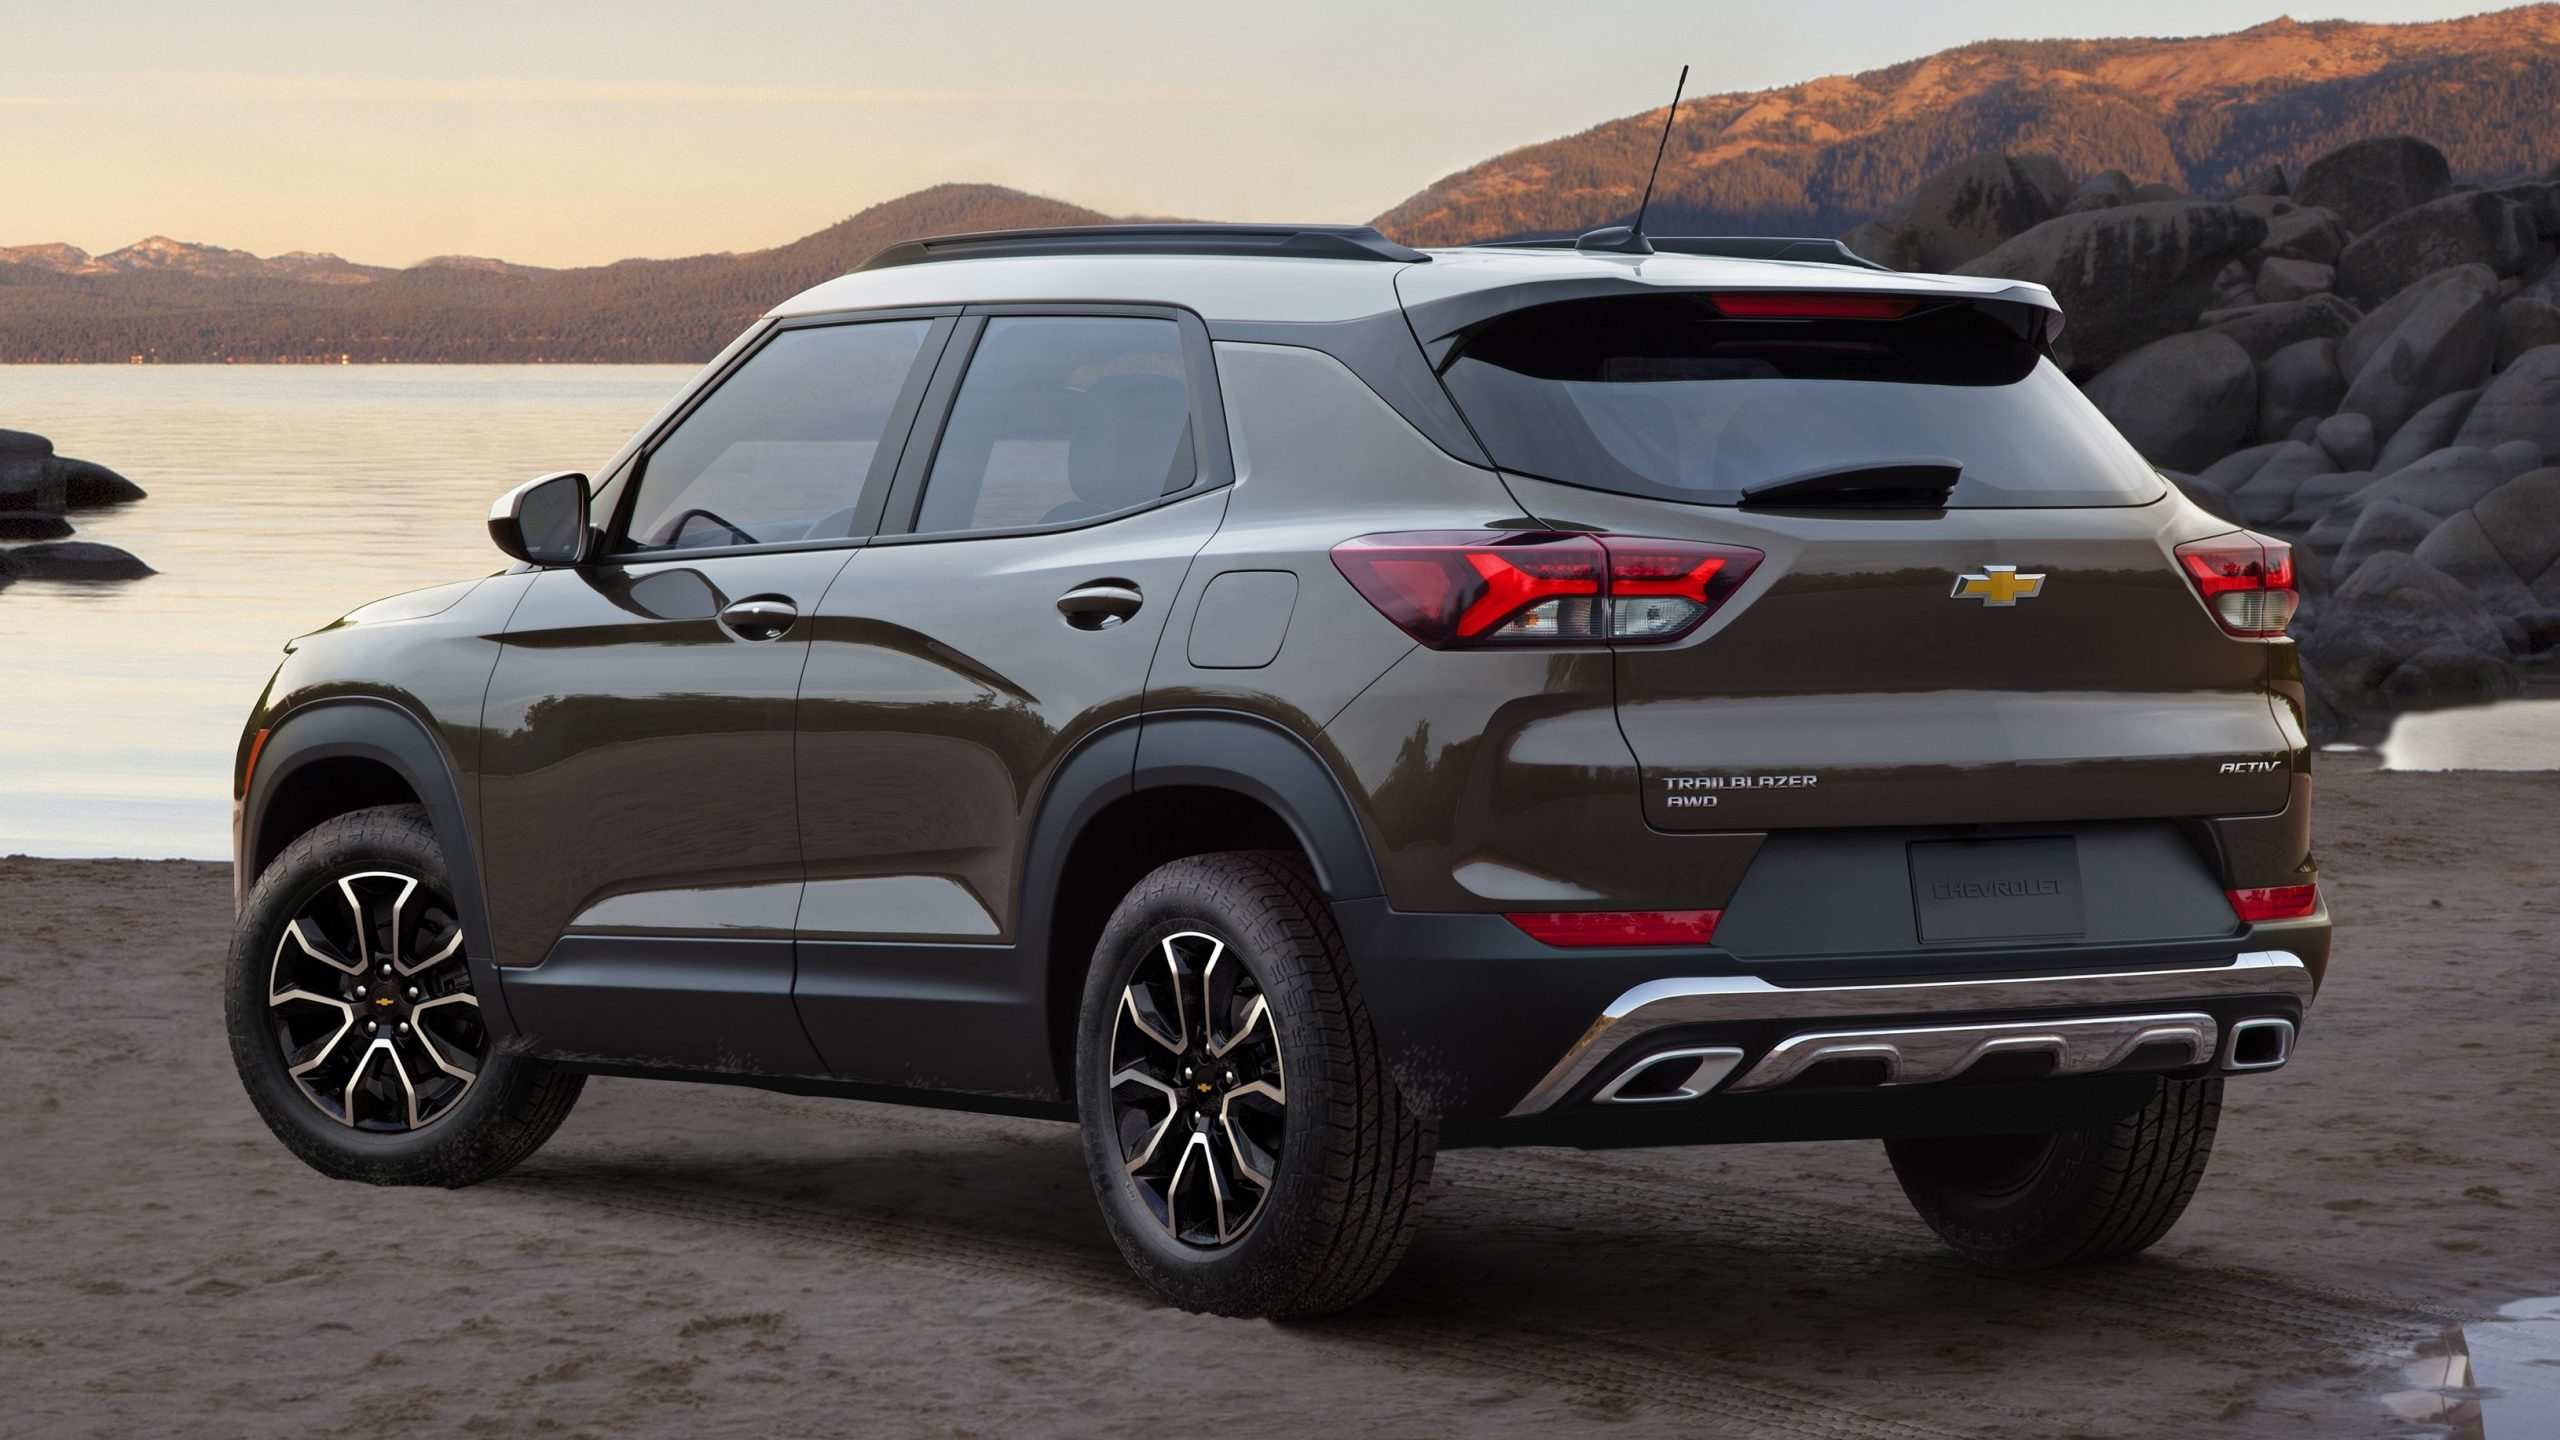 2021 Chevrolet Trailblazer First Look | Kelley Blue Book 2022 Chevrolet Blazer Order Guide, Offers, Price